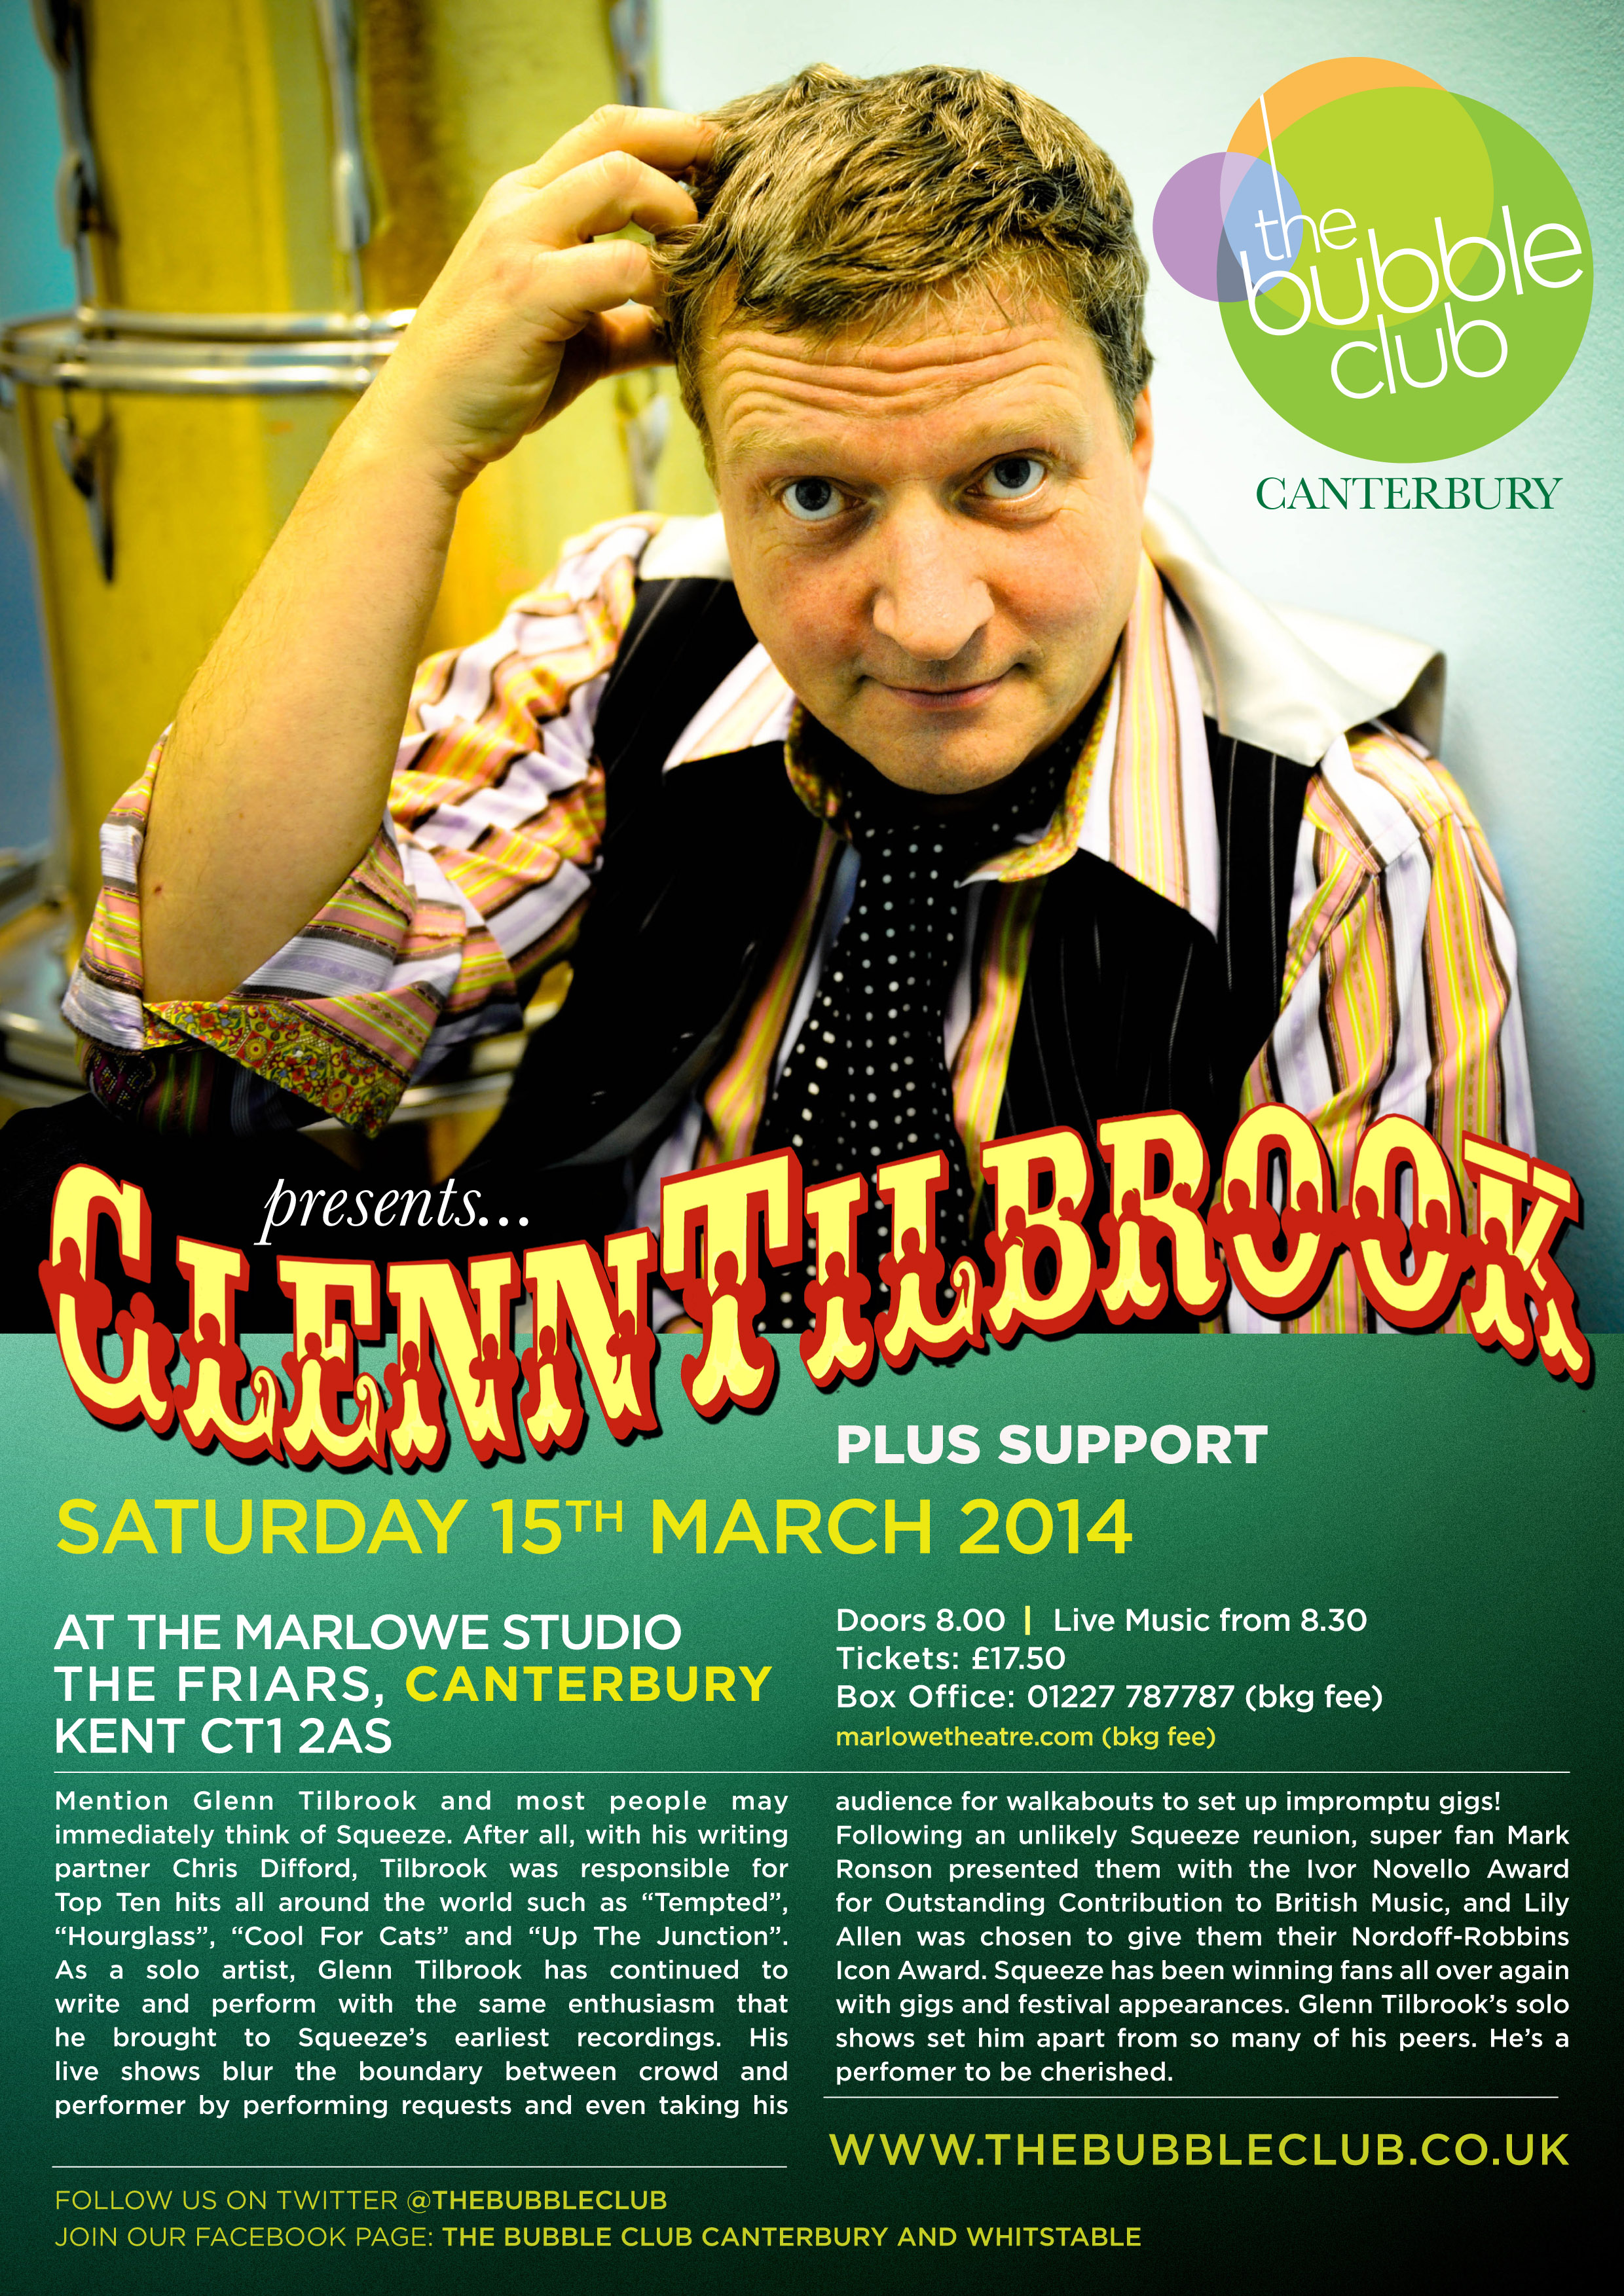 Glen Tilbrook March 15th 2014, Marlowe Studio, Canterbury